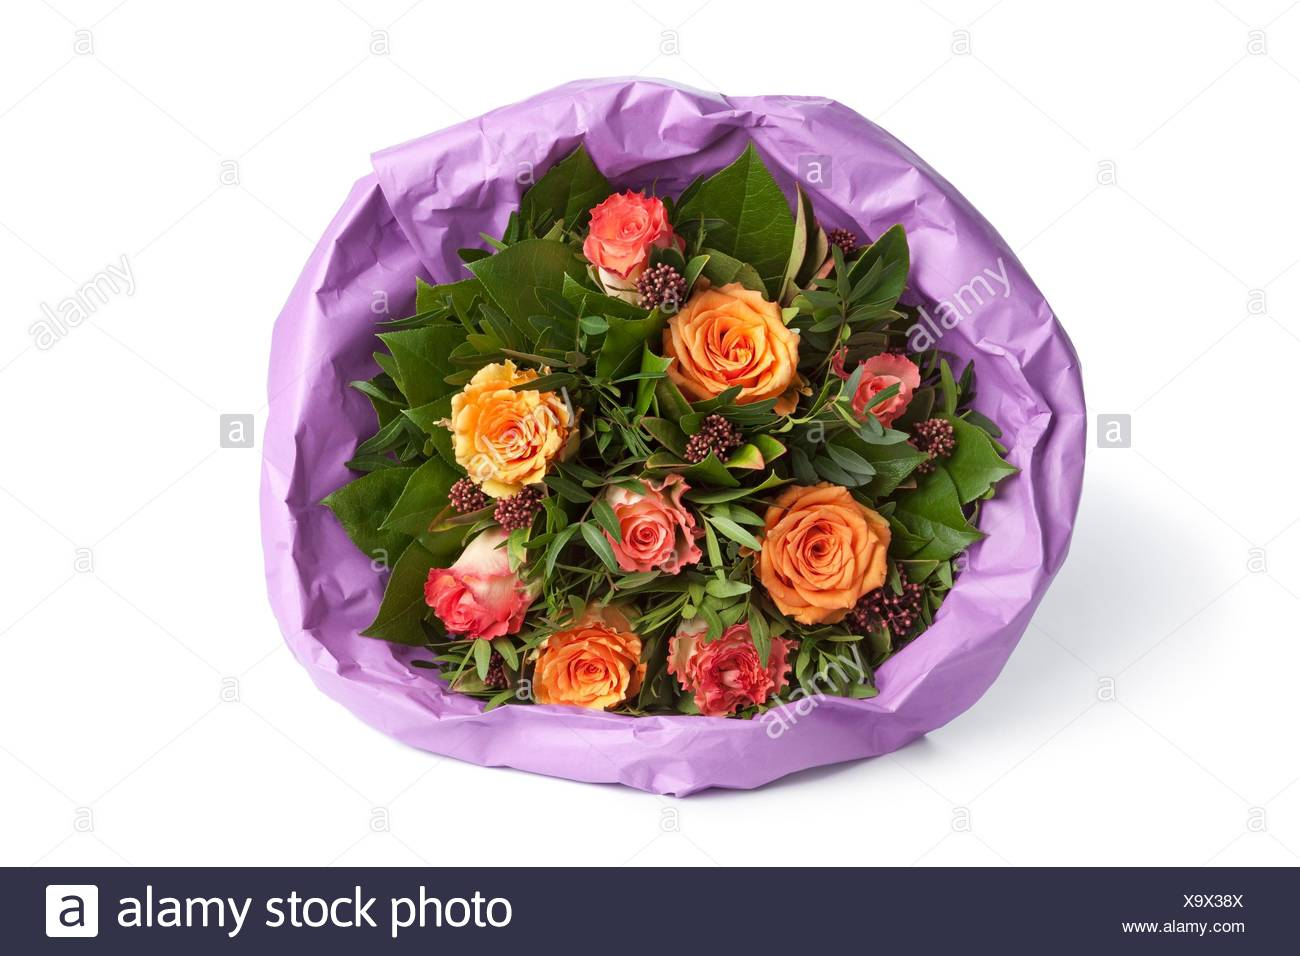 Bouquet Of Roses Wrapped In Paper On White Background Stock Photo